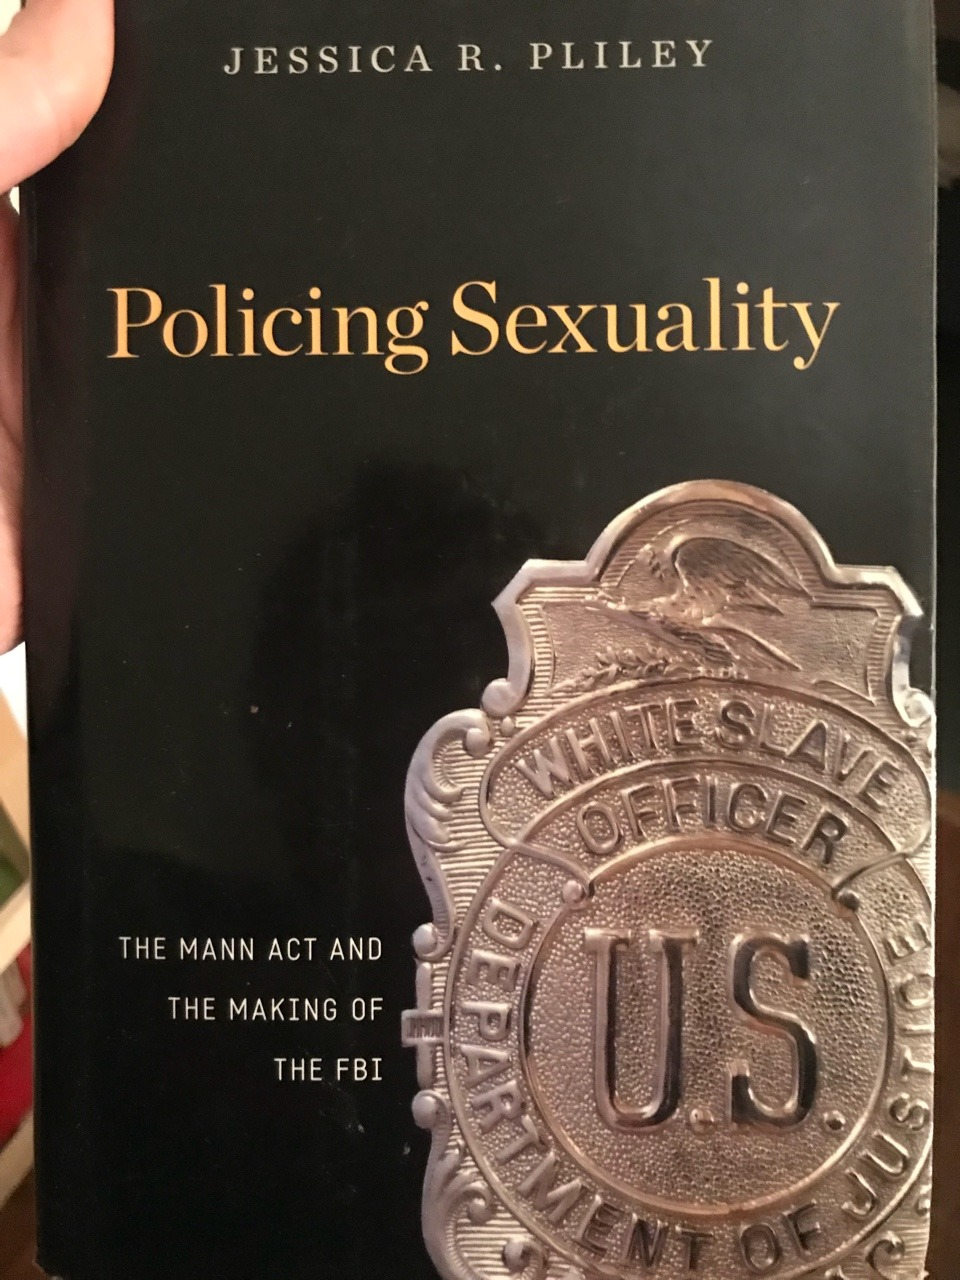 Another definite must-read for anyone trying to understand the history of our sex work laws and the creation of the FBI